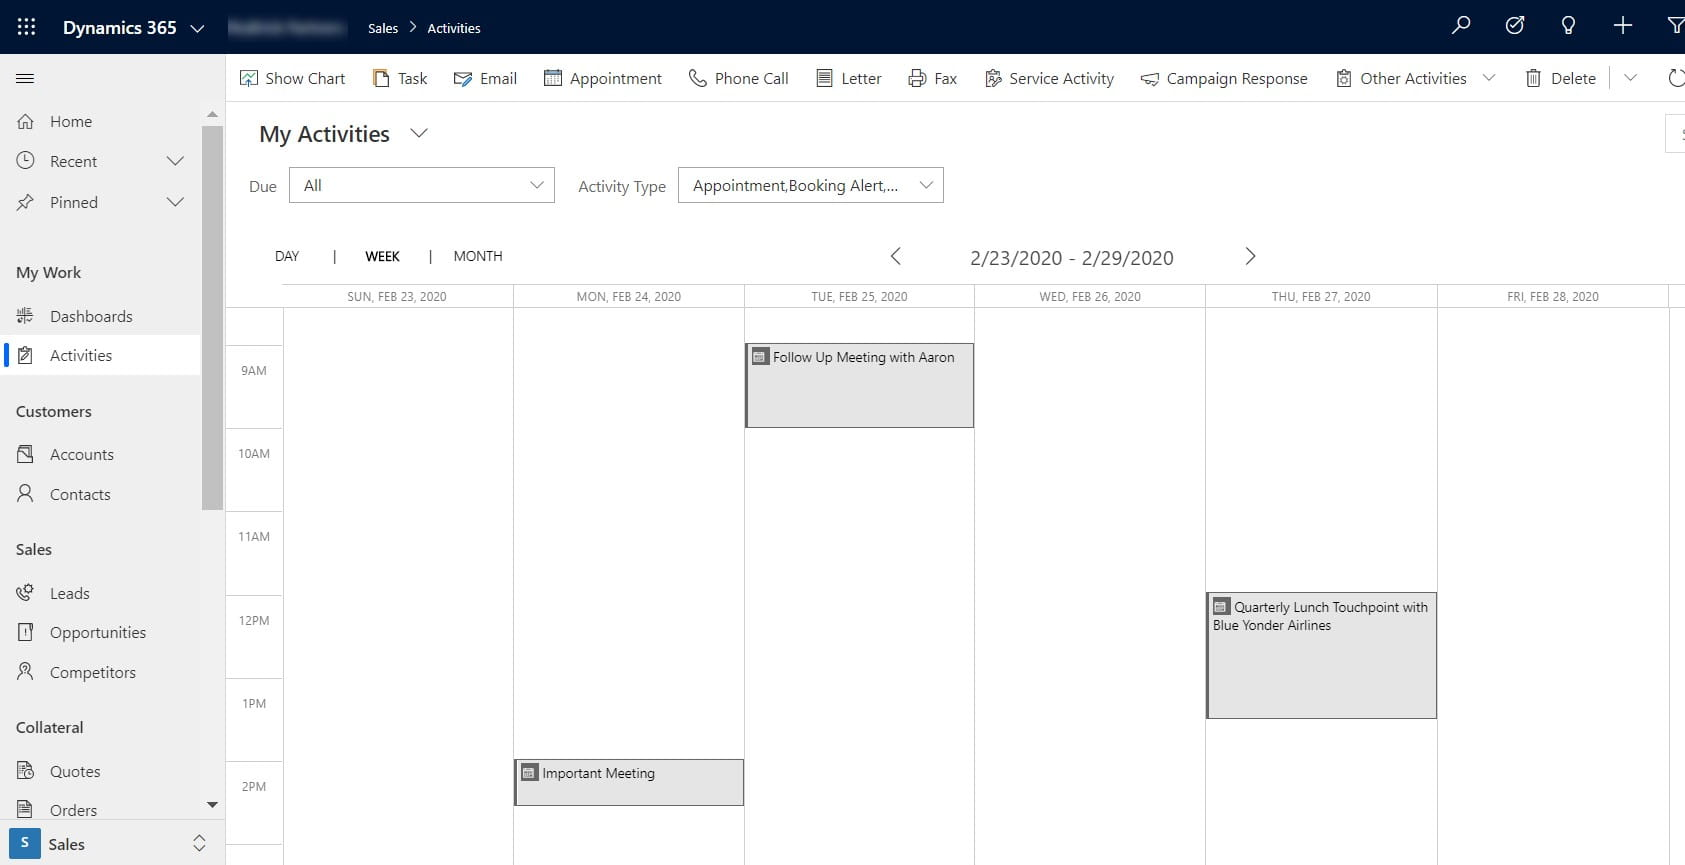 Calendar view showing activities for the week